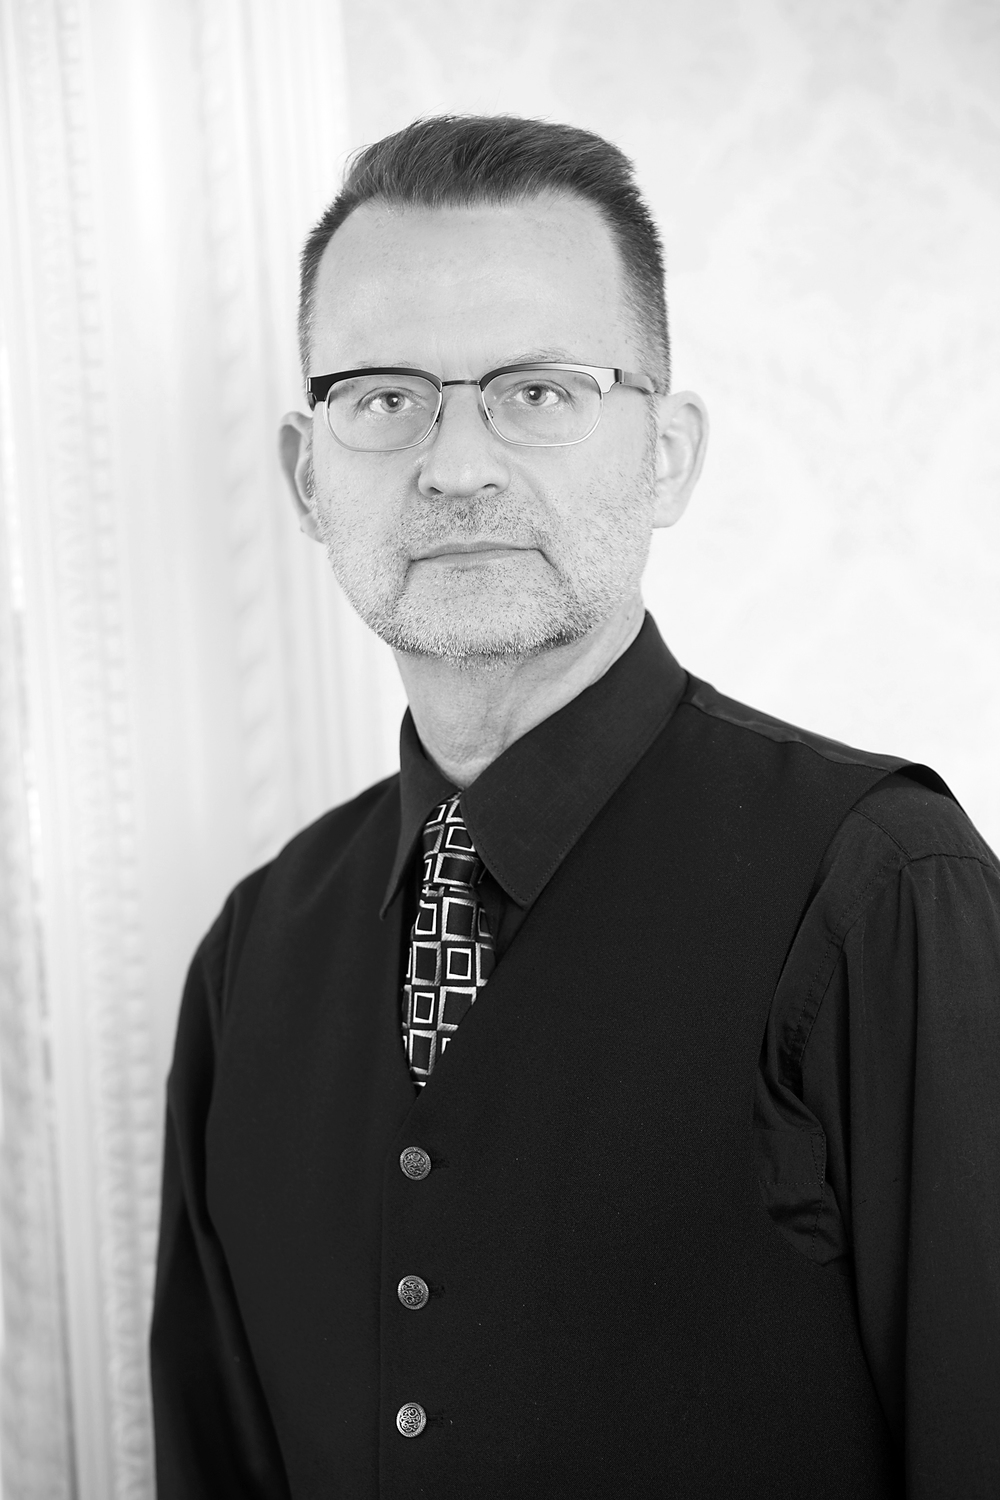 Mark, colourist He brings a fun and quirky energy to the salon's atmosphere and a wealth of knowledge for hair colour. With over 25 years experience as a colourist, Mark knows his way around a head of hair and how to please each guest while entertaining them a little.